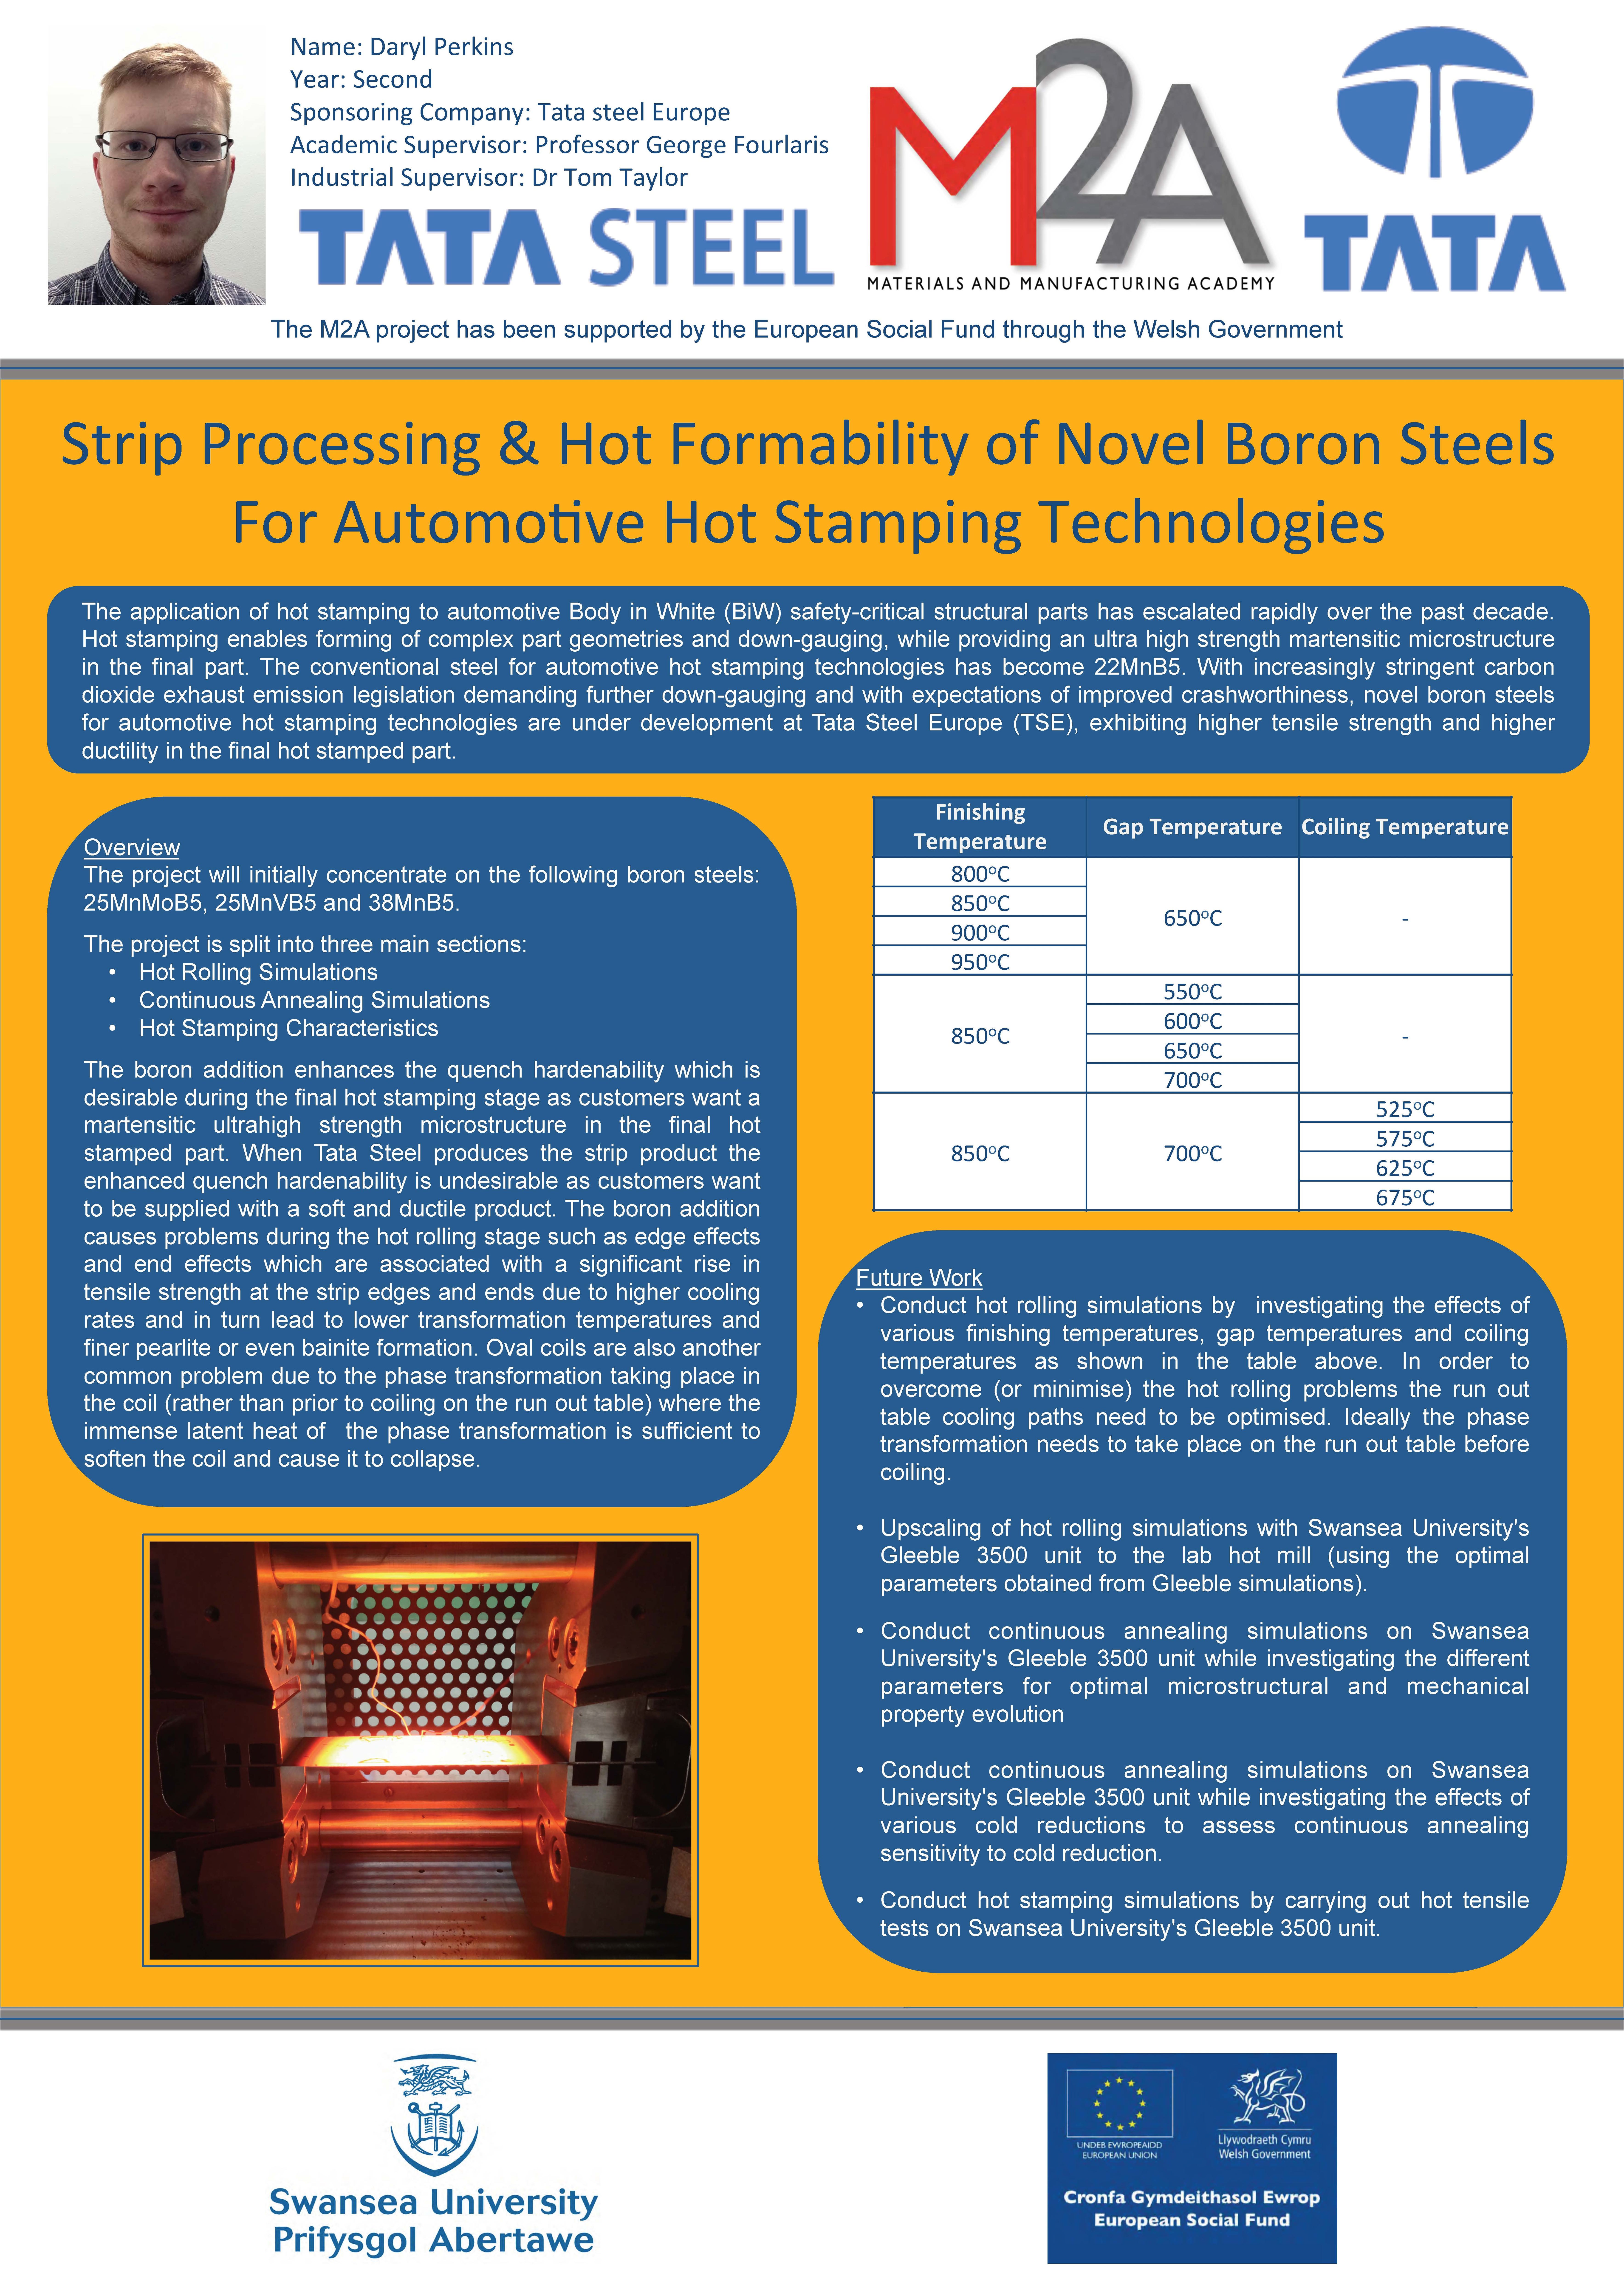 Strip Processing & Hot Formability of Novel Boron Steels For AutomoEve Hot Stamping Technologies